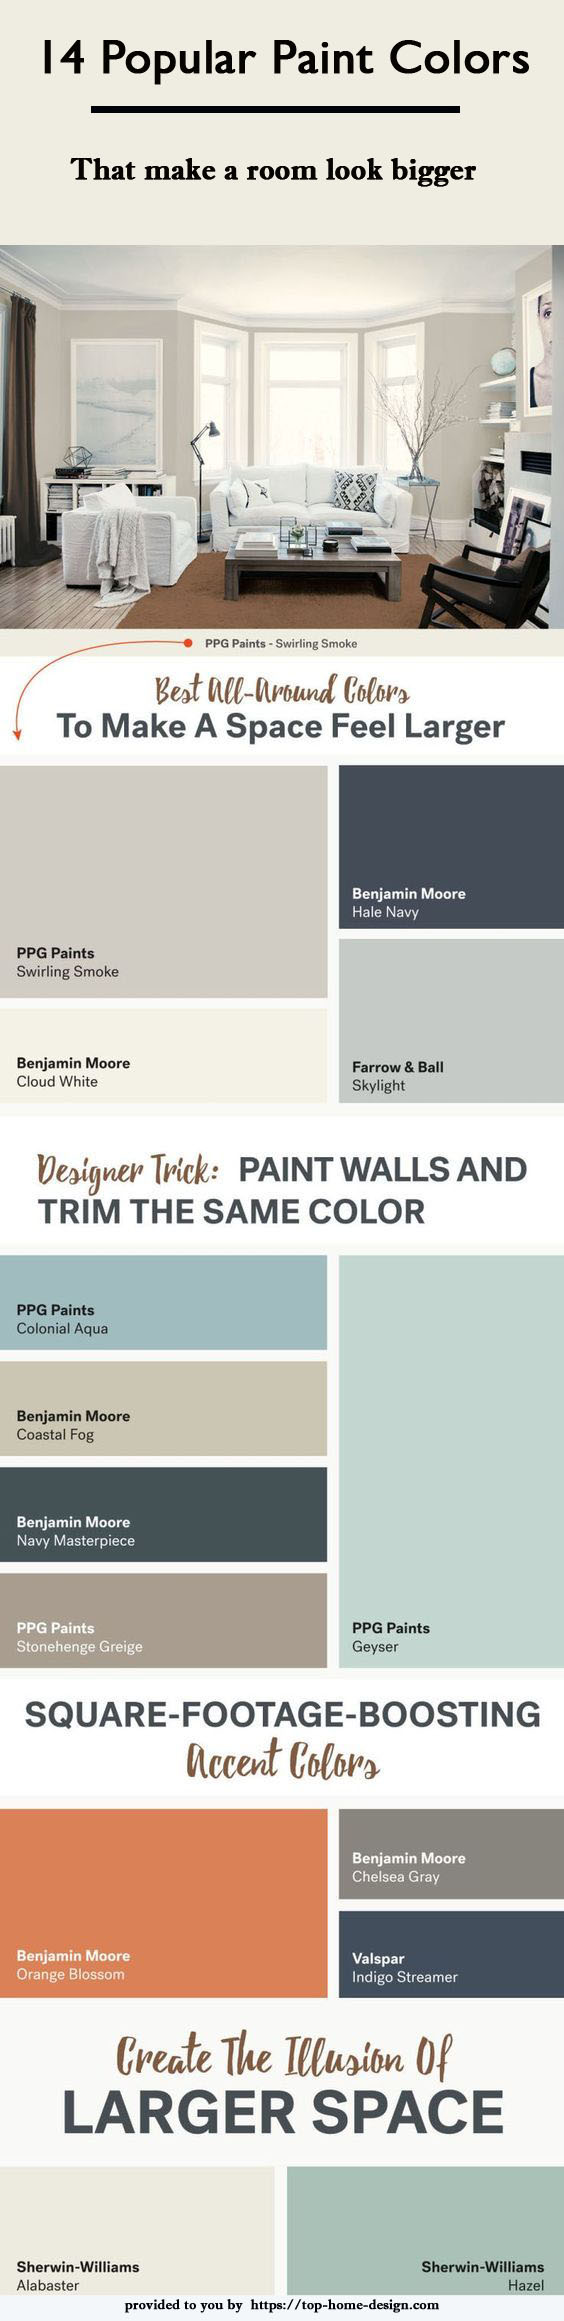 Infographic : 14 popular paint colors that make a room look bigger, provided by:https://top-home-design.com